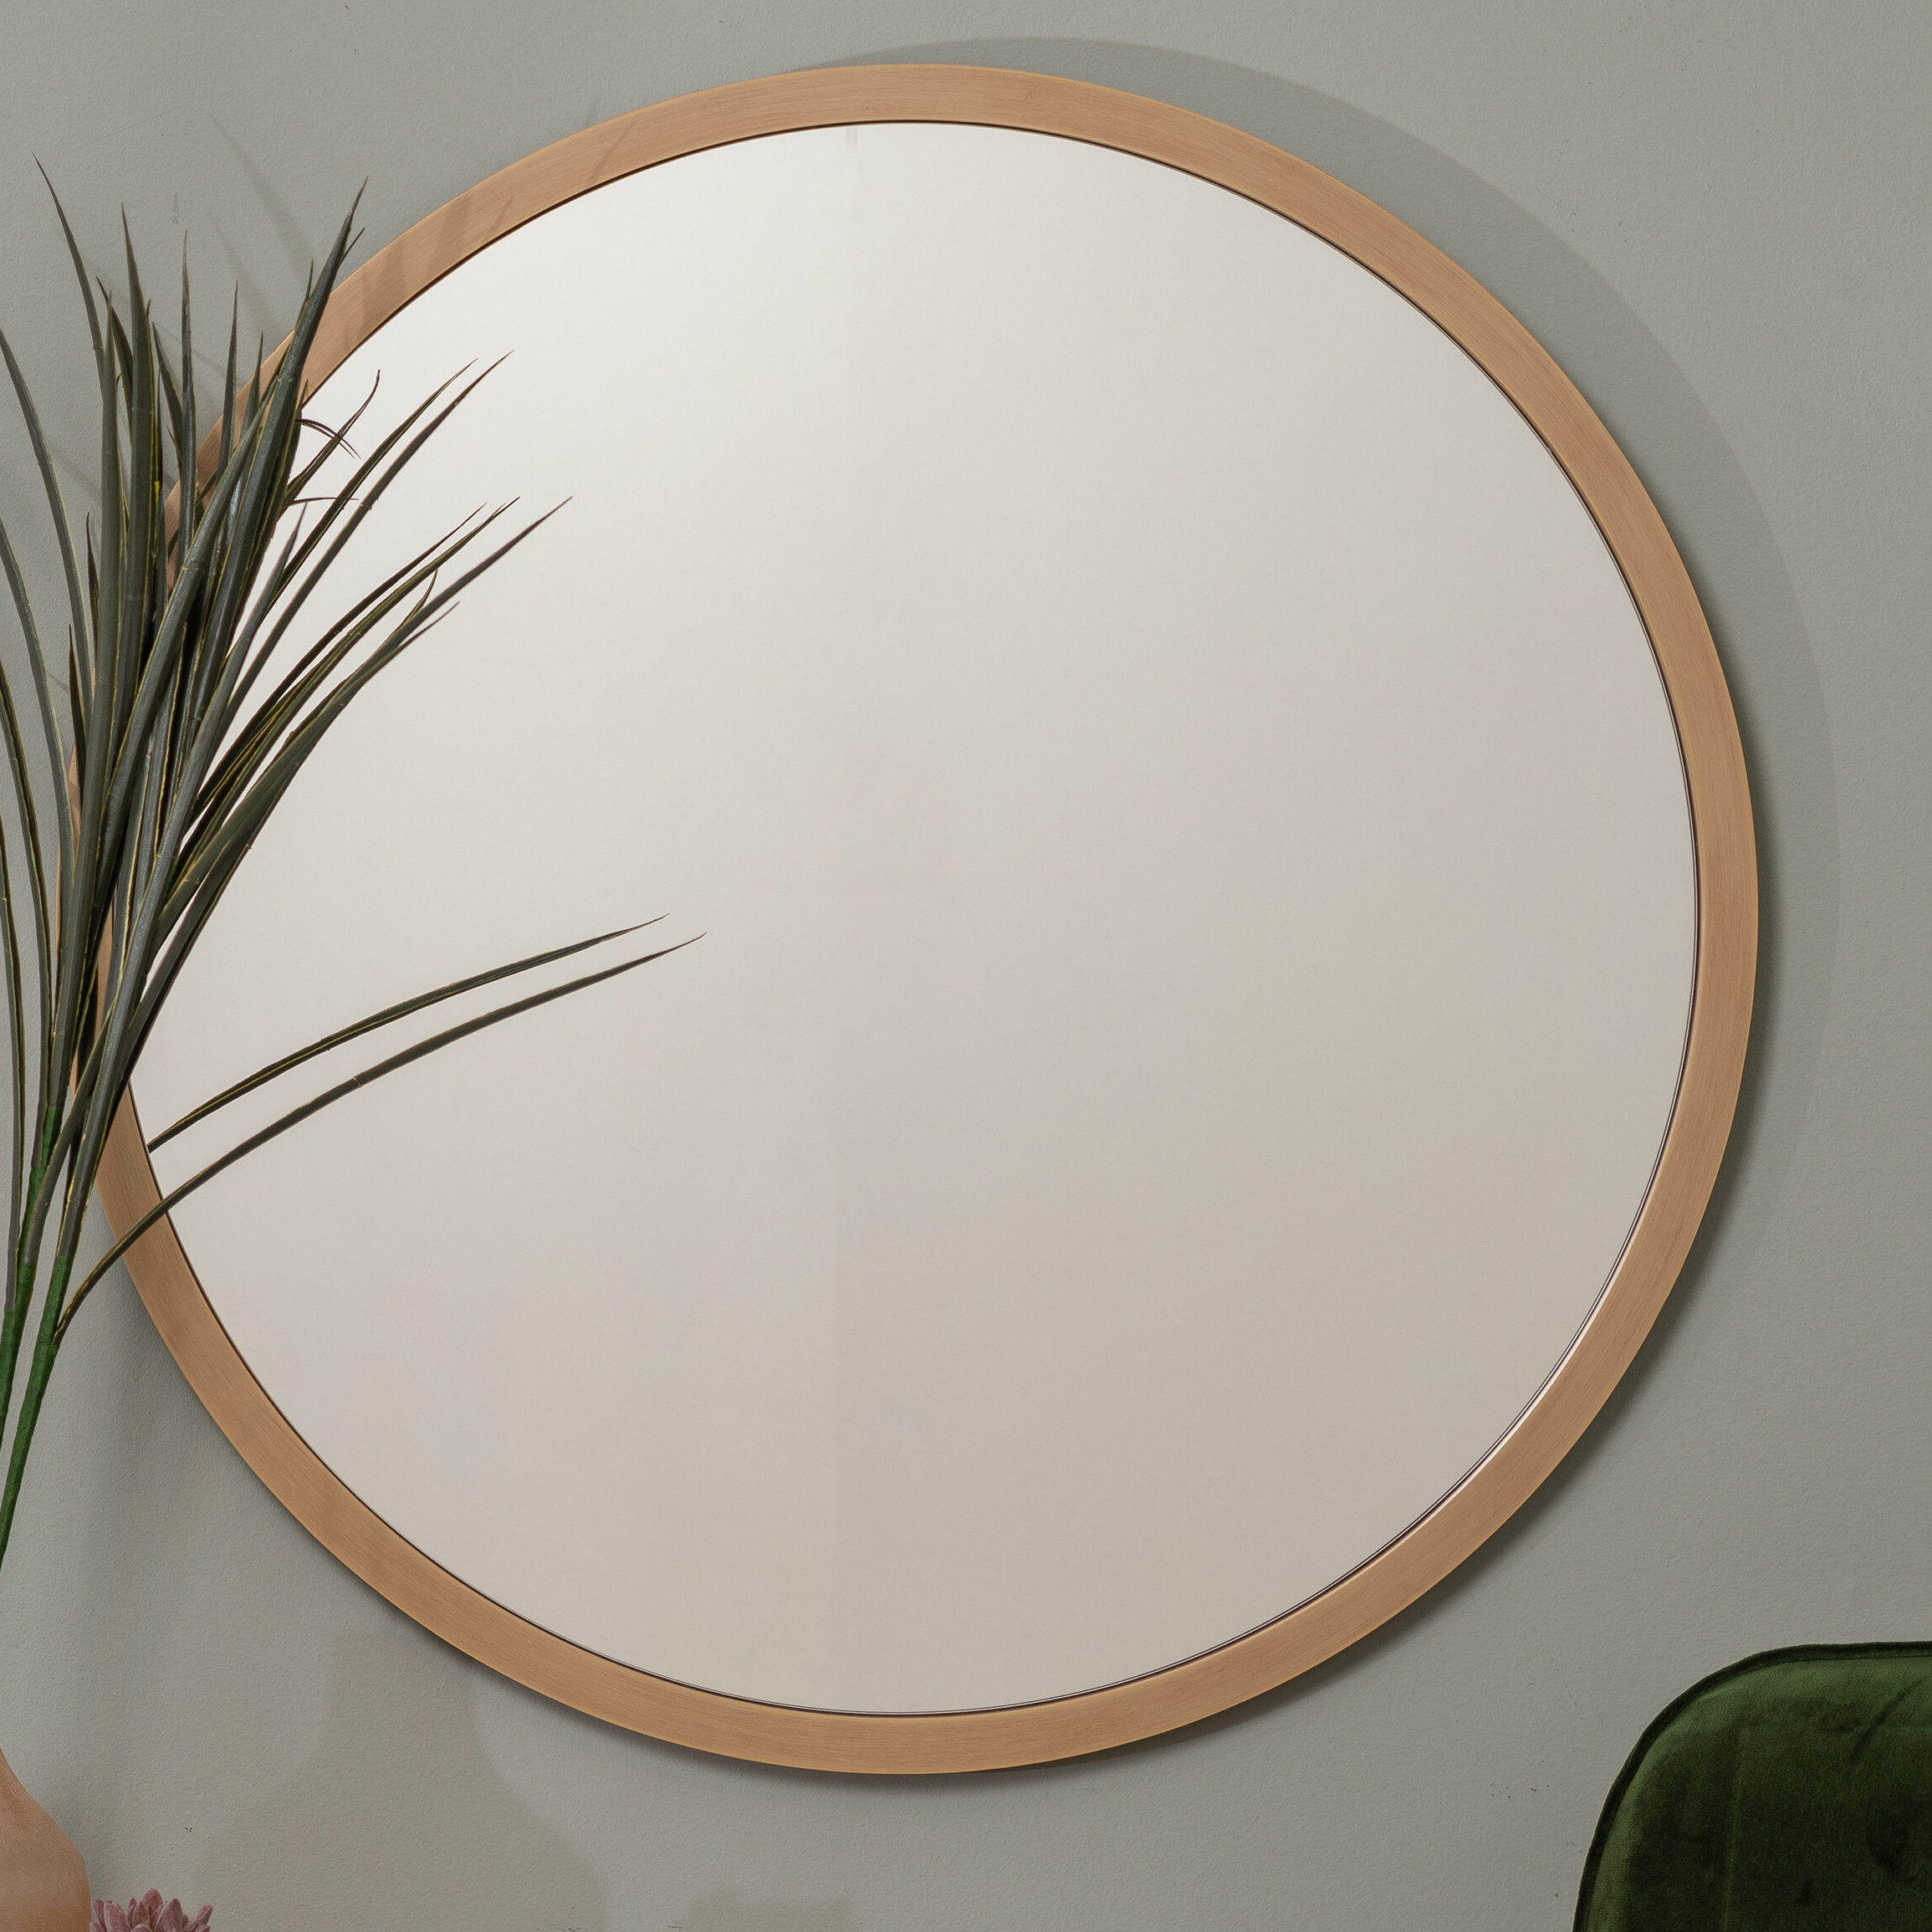 Bem Decorative Wall Mirrors Regarding Most Up To Date Swansea Scandinavian Round Wall Mirror (View 18 of 20)